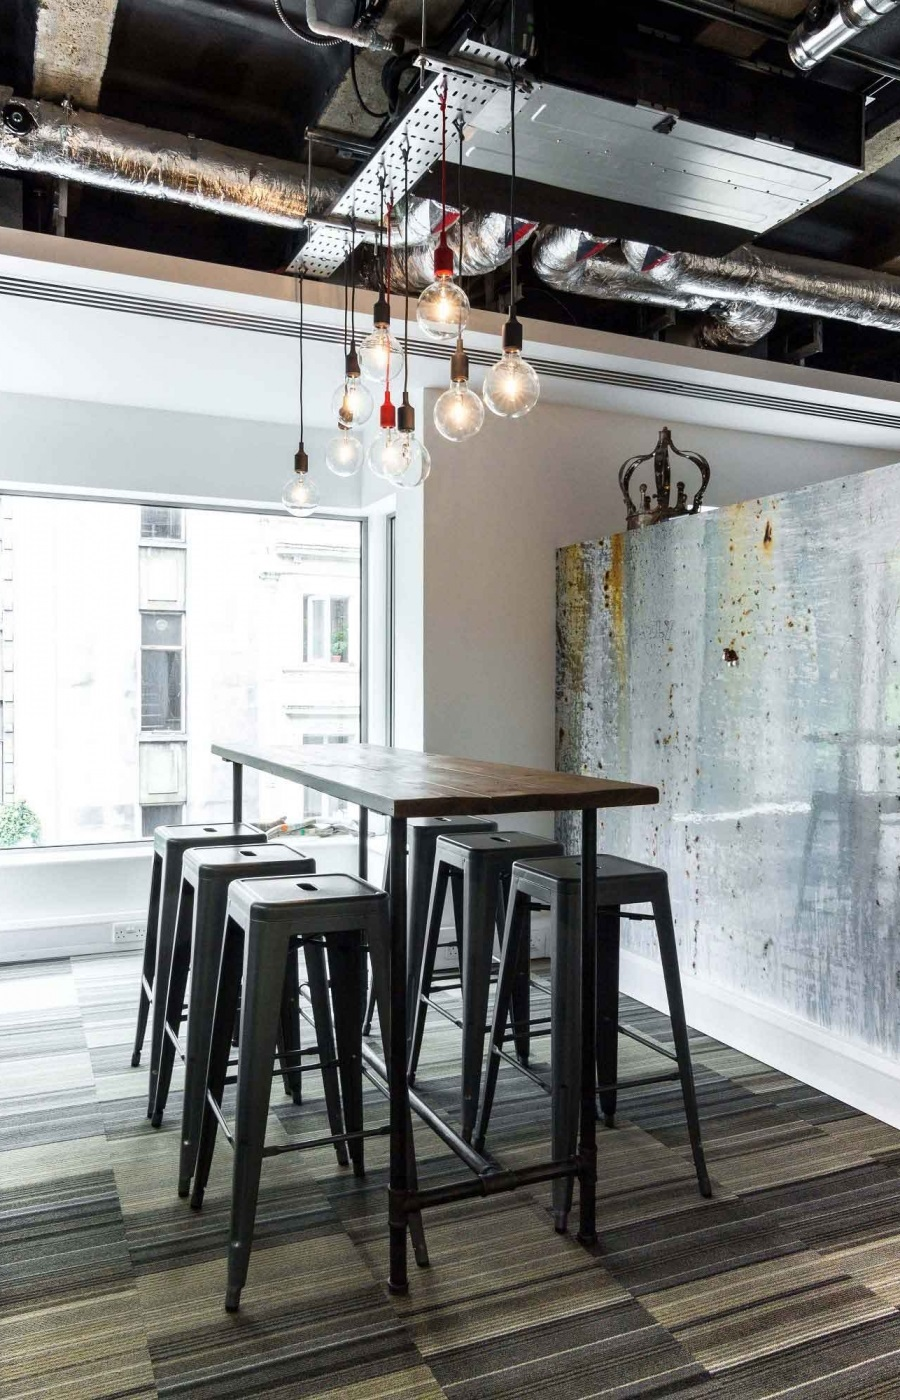 tall metal seating stools under a table